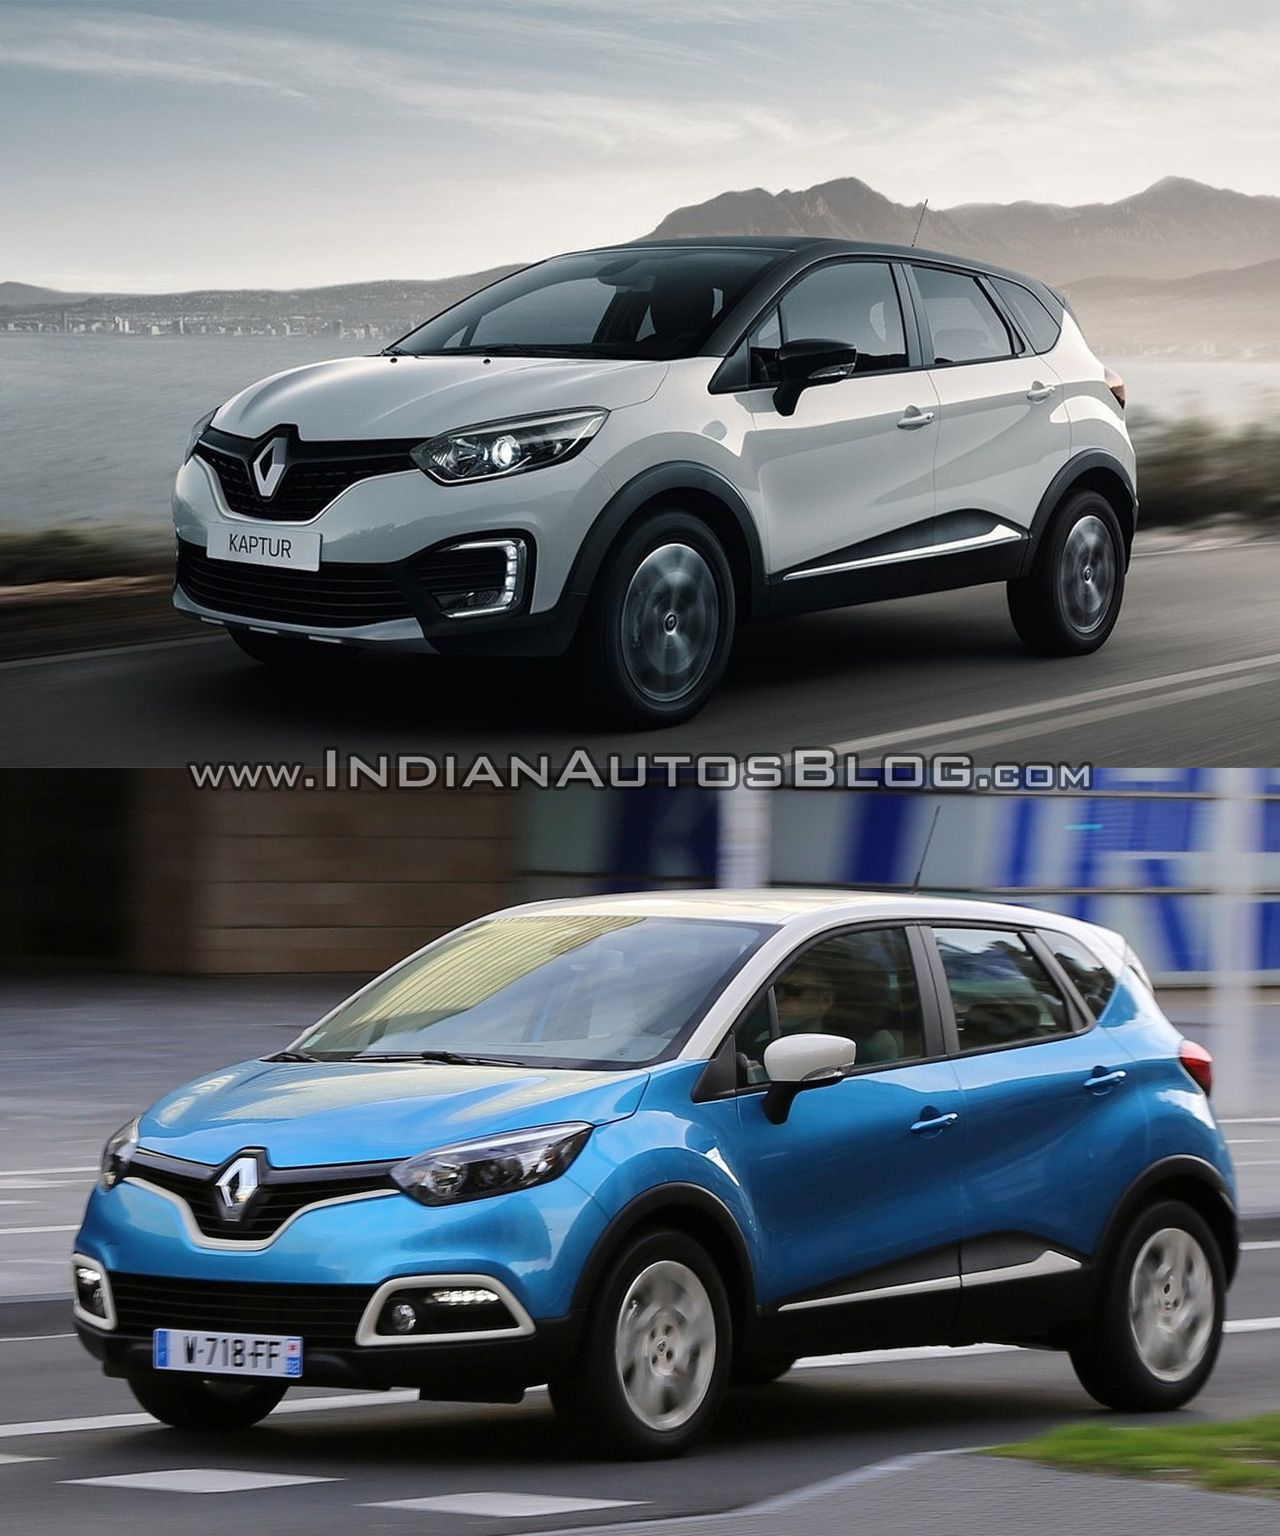 Renault Kaptur Vs Renault Captur Comparo Automobile Car